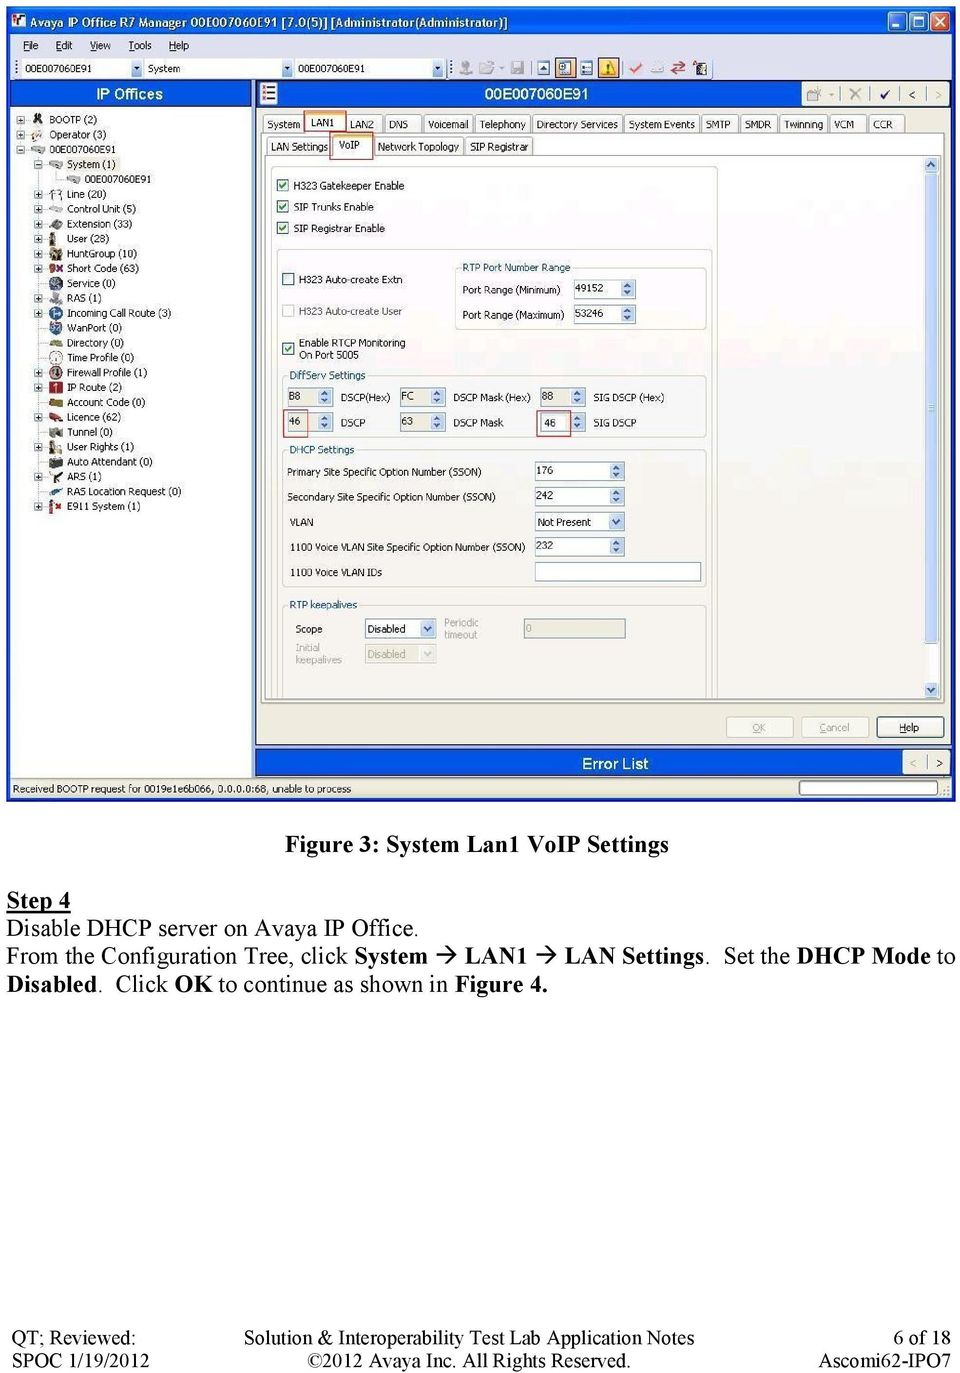 From the Configuration Tree, click System LAN1 LAN